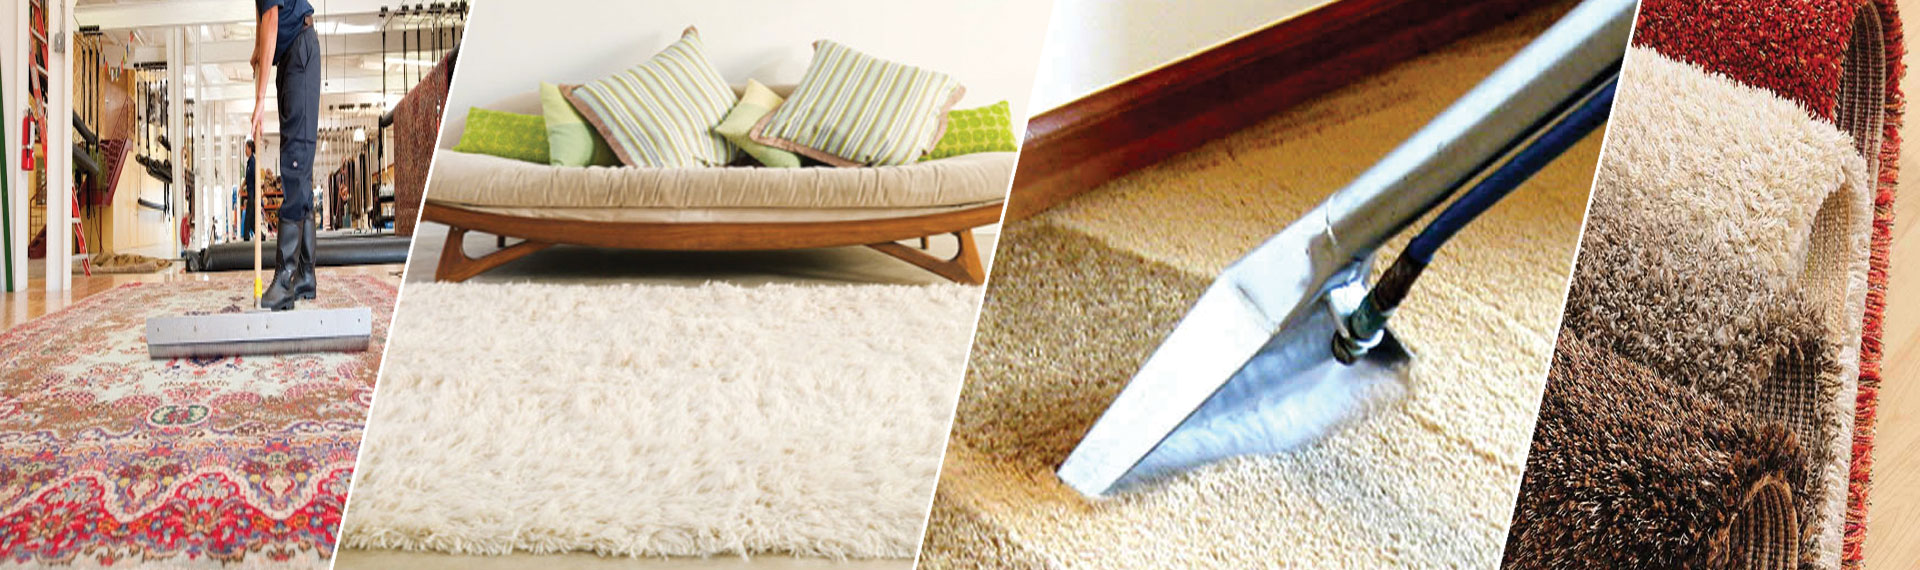 Robert Rug Cleaning Service North Wales PA